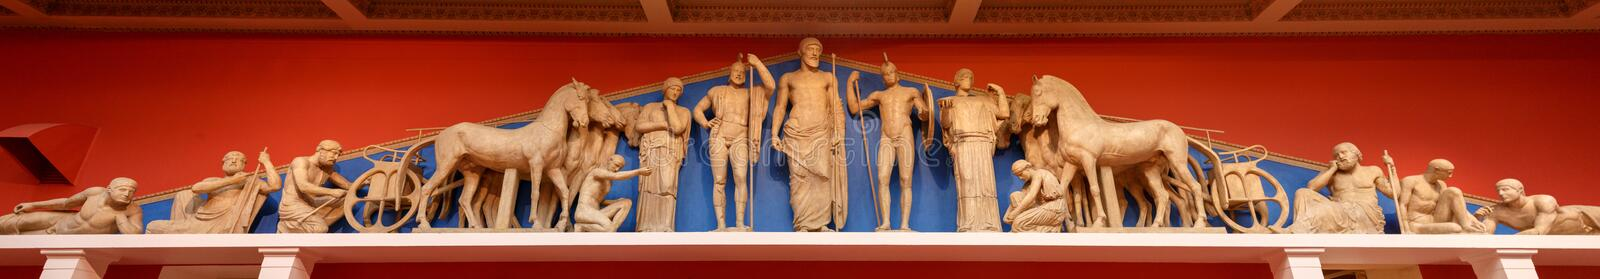 Pantheon statues. Zeus, Athena and other ancient Greek gods.  stock photo